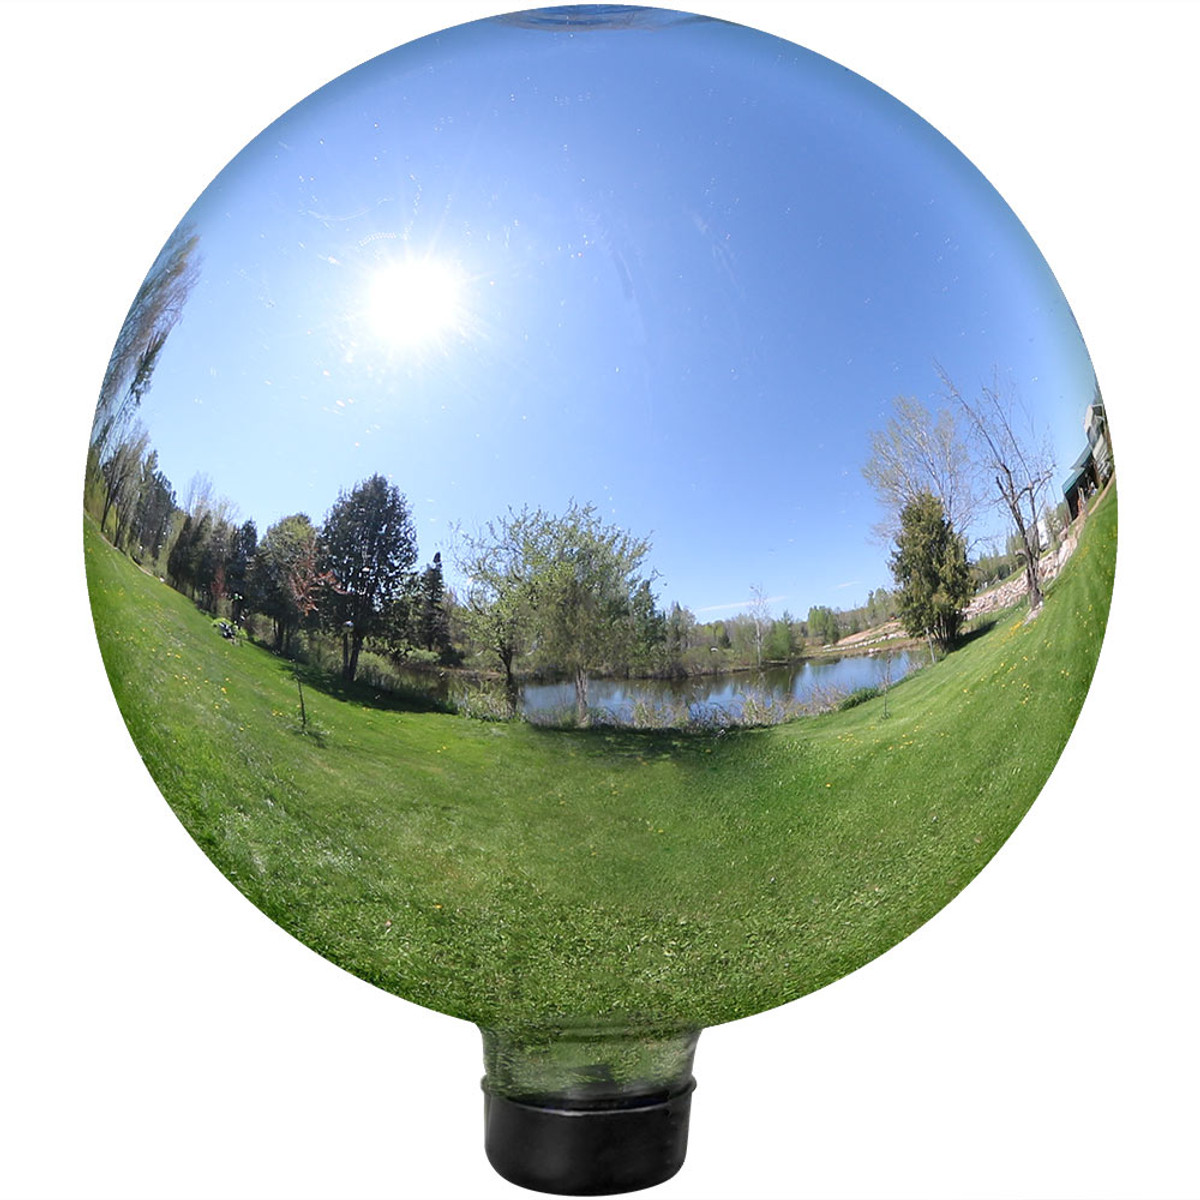 46801ebd Sunnydaze 10-Inch Glass Gazing Globe Ball with Mirrored Finish, Color  Options Available